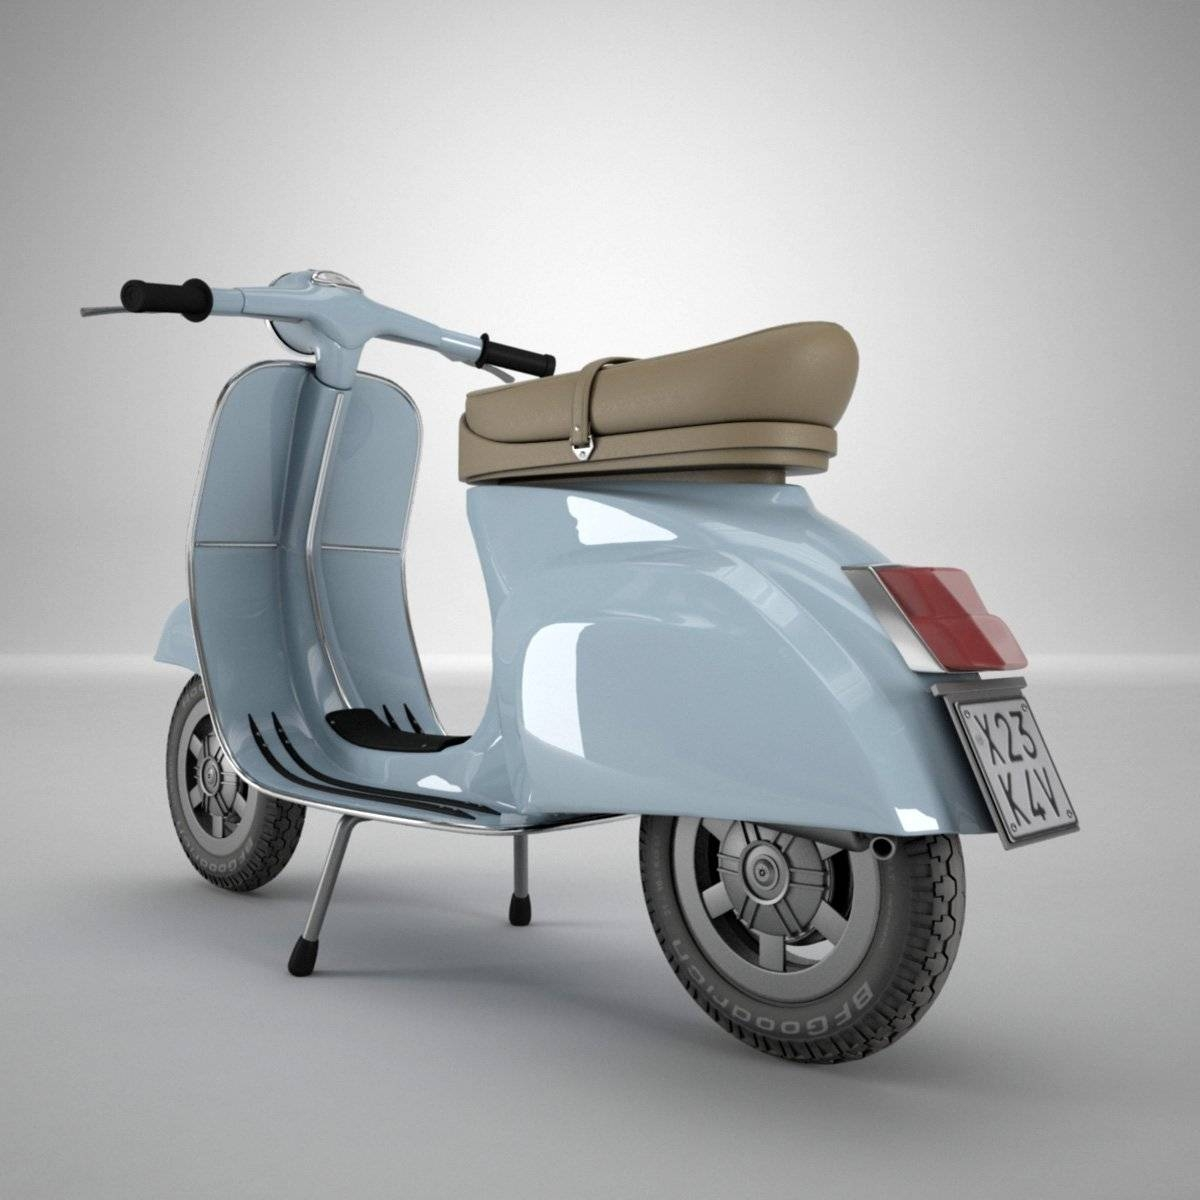 Vespa 3D Model In Motorcycle 3Dexport With Regard To 2017 Vespa 3D Wall Art (View 15 of 20)